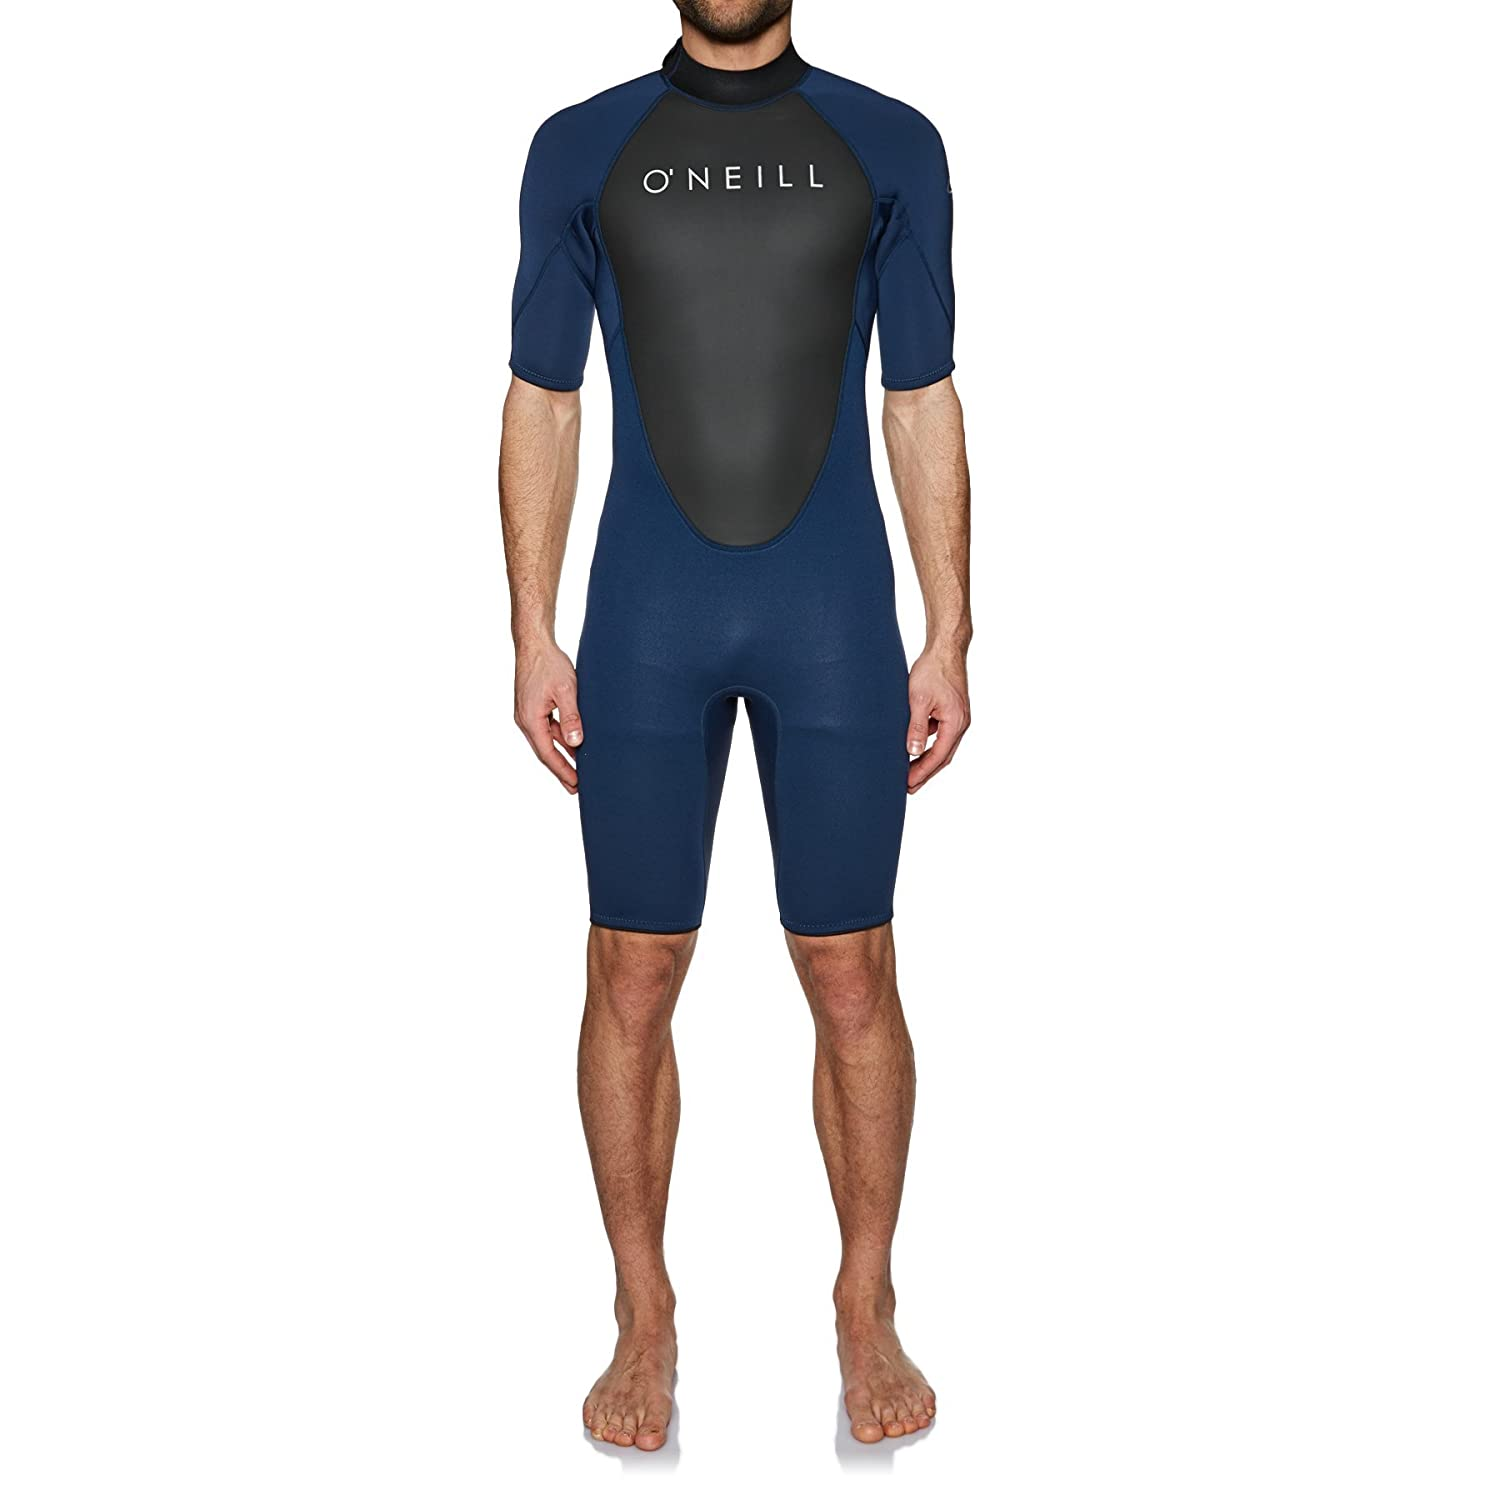 52eb27fd26 O Neill Reactor Ii 2MM Back Zip Shorty Wetsuit Wetsuit Navy  Amazon.co.uk   Sports   Outdoors